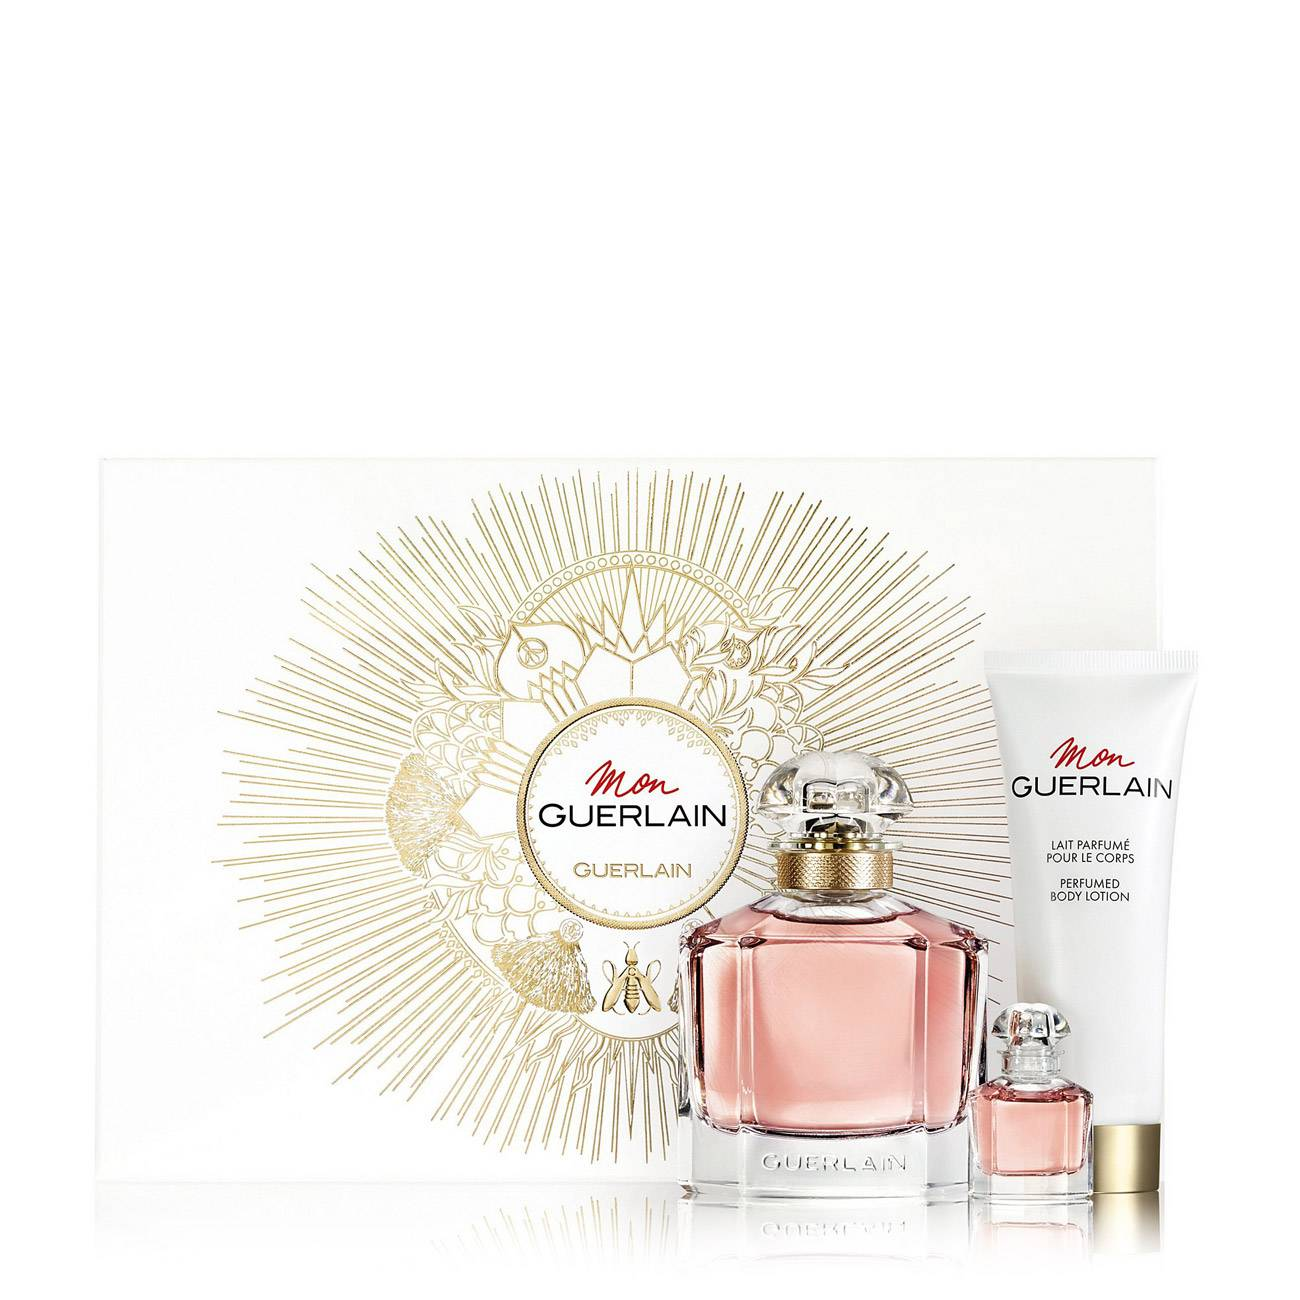 MON GUERLAIN 180ml imagine produs